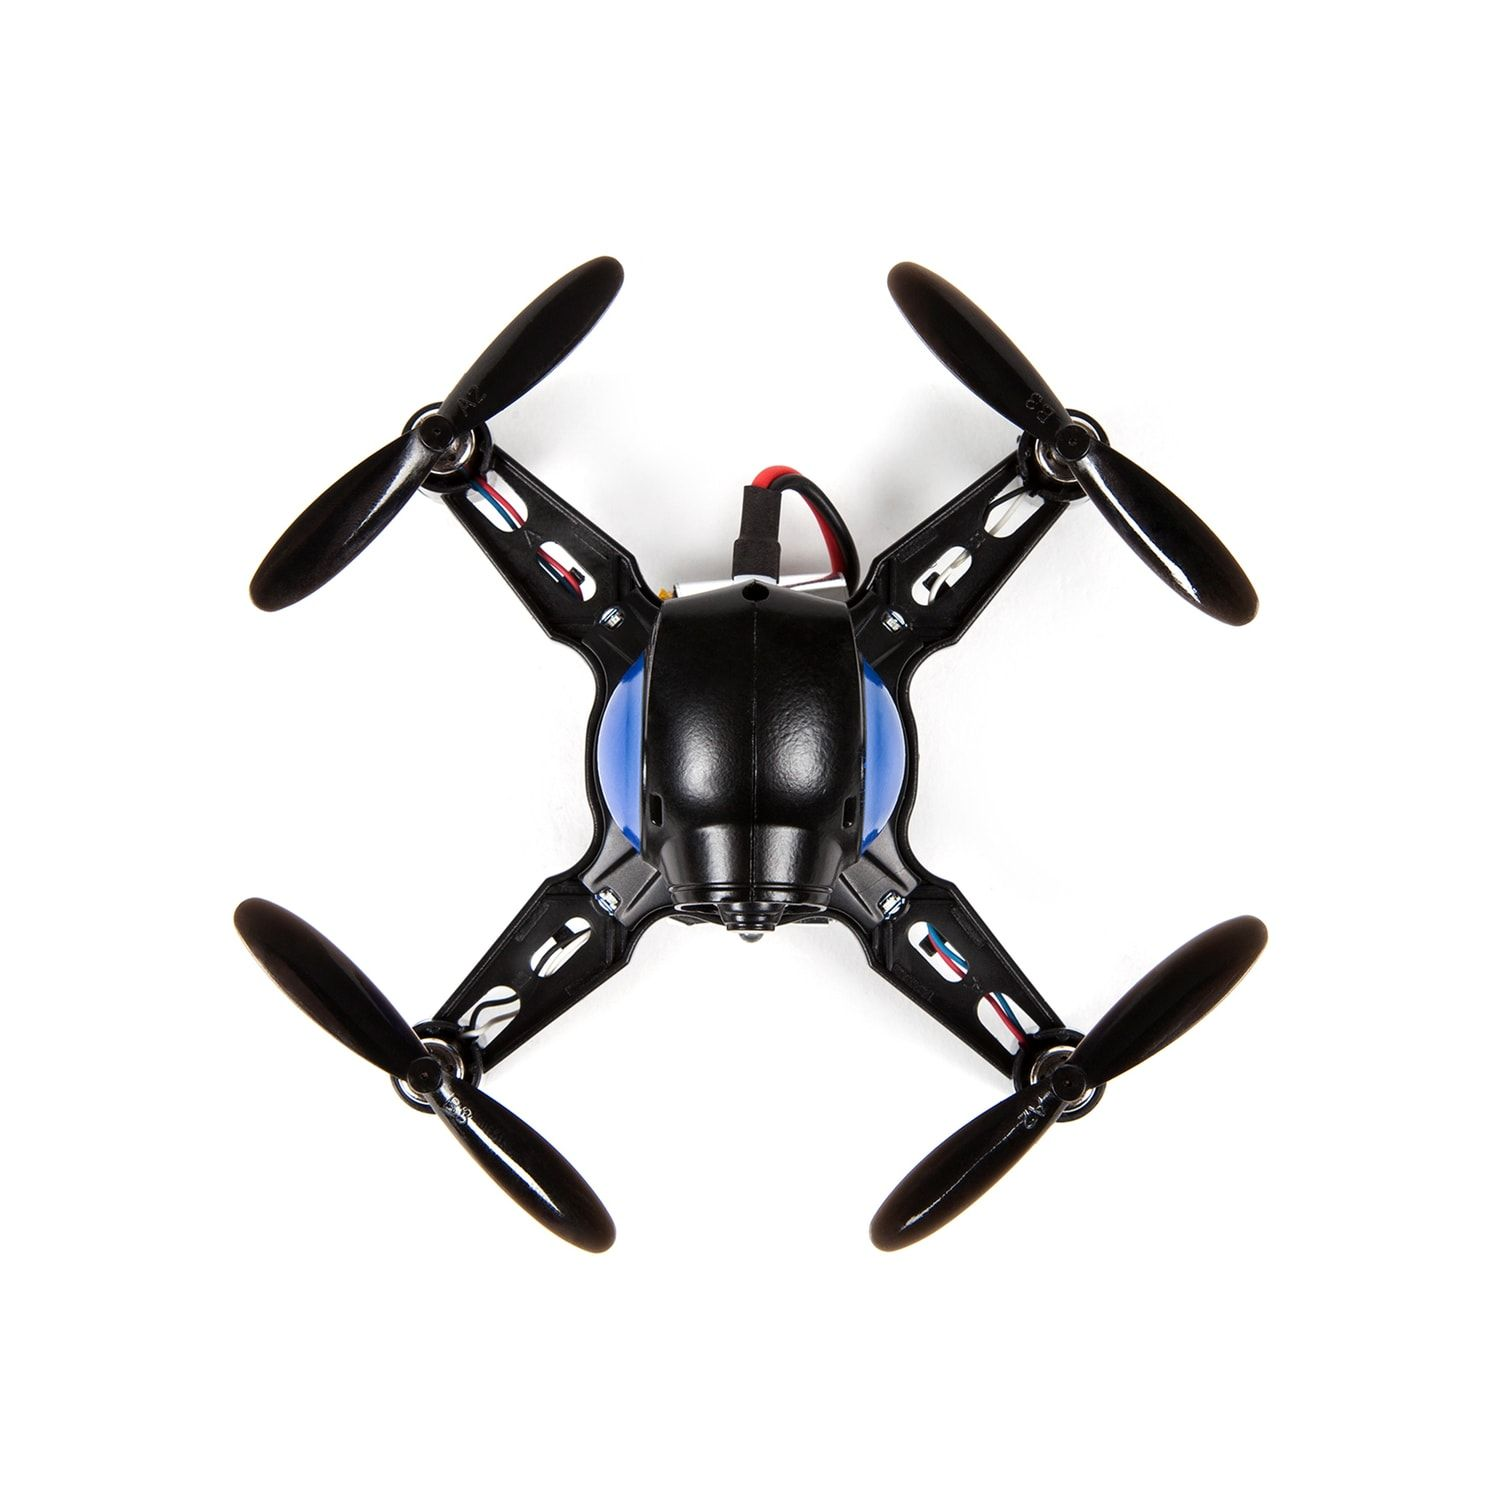 World Tech Toys Eclipse 2.4GHz 4.5CH DIY RC Racing Drone #techtoys